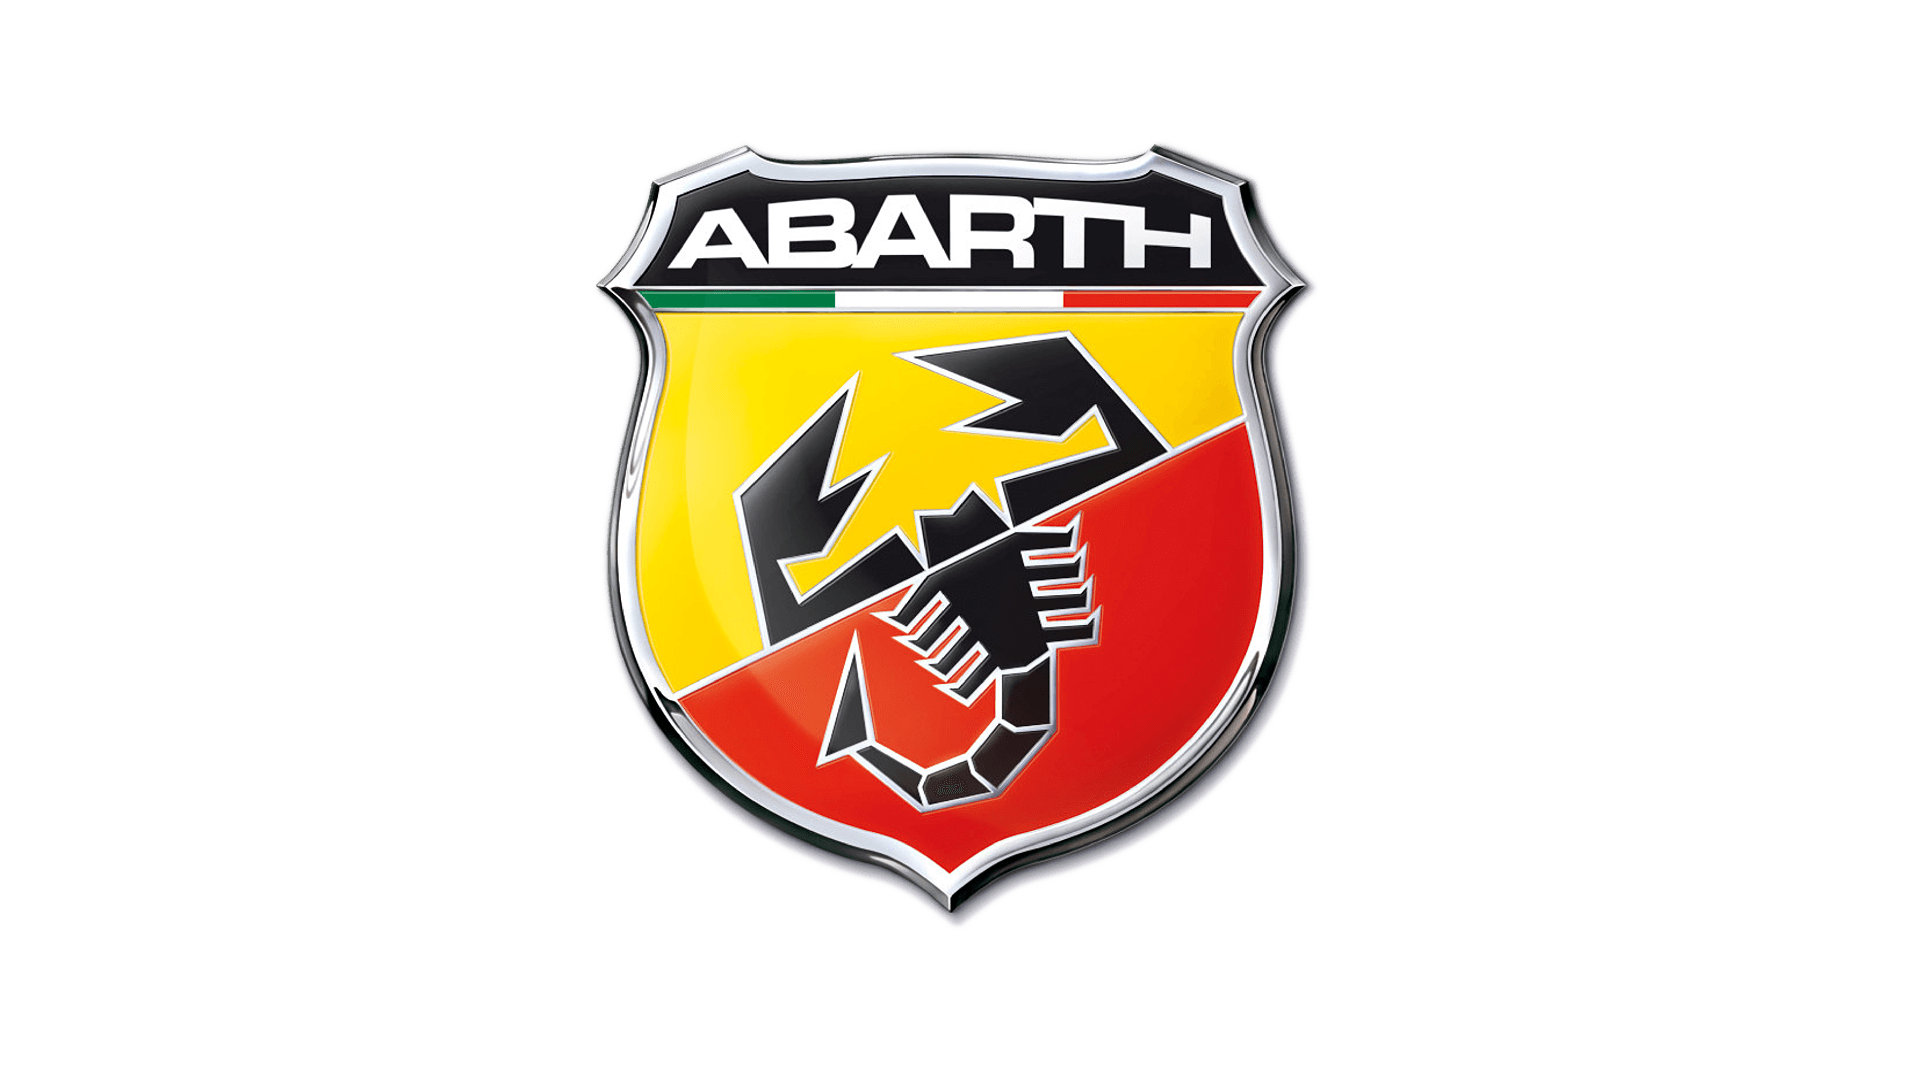 Car Logo Abarth transparent PNG.